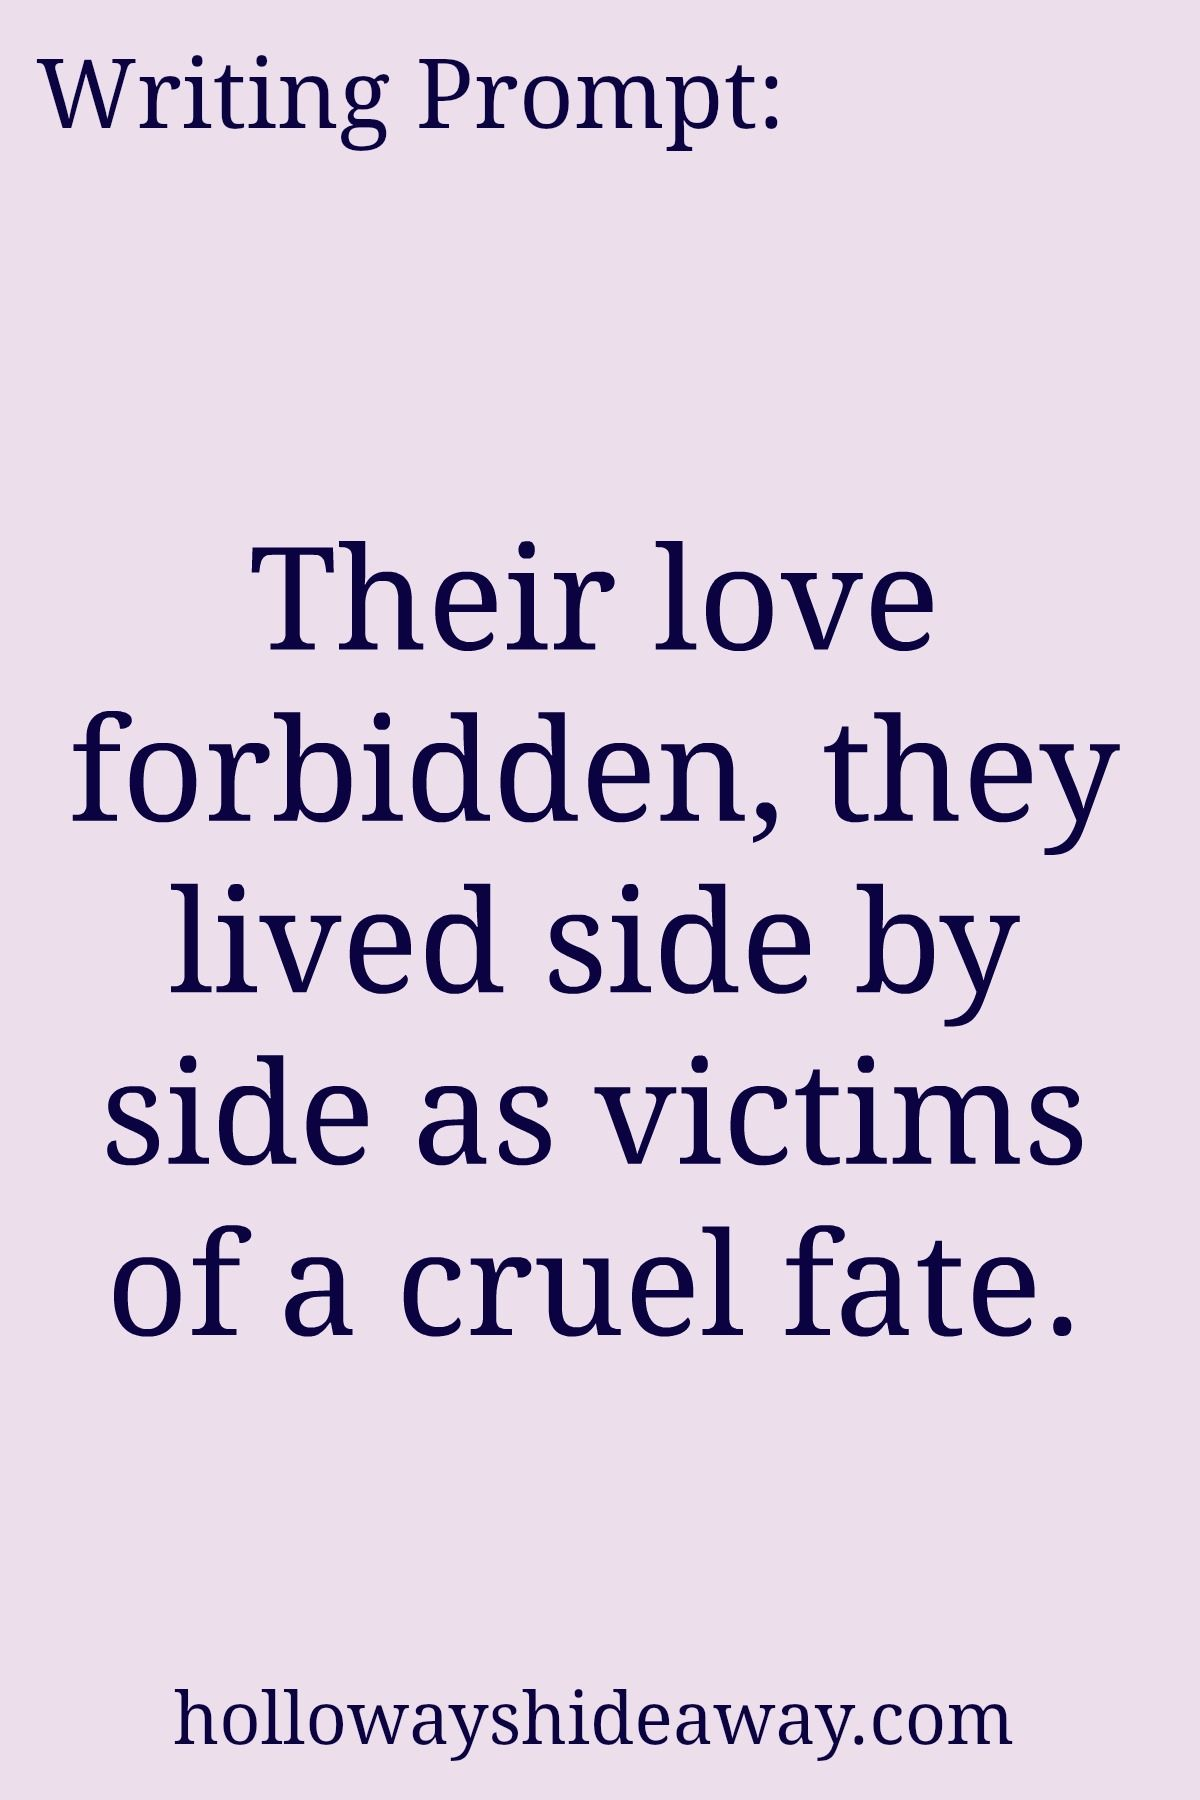 Romance Writing Prompts Apr2017 Their Love Forbidden They Lived Side By Side As Victims Writing Prompts Funny Writing Prompts Romance Romantic Writing Prompts